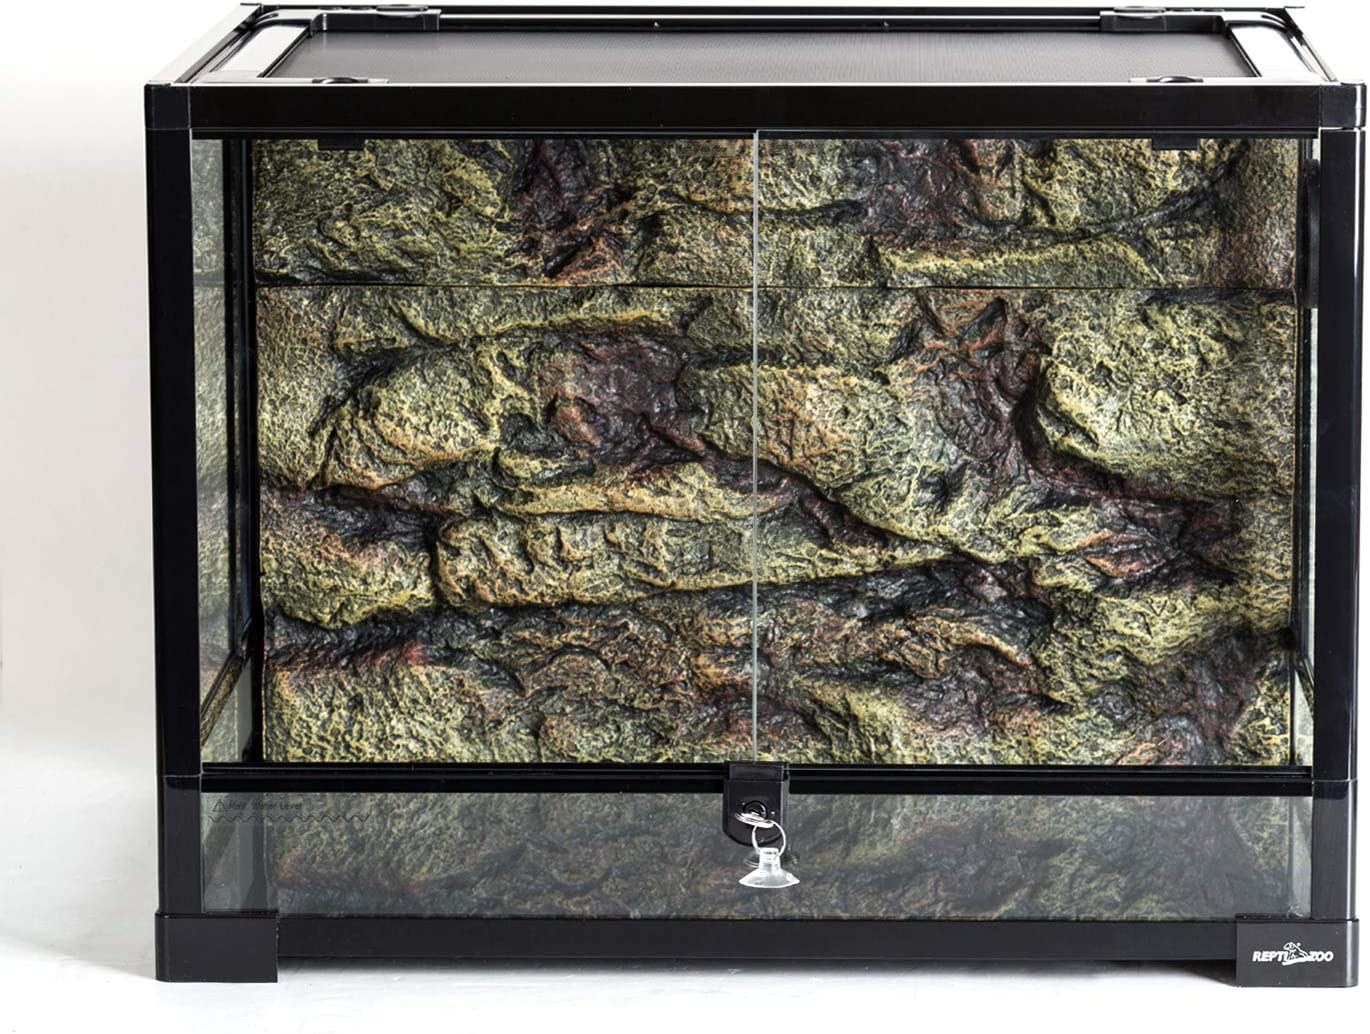 "REPTI ZOO 34 Gallon Large Reptile Glass Terrarium Tank with Foam Backgrounds,Double Hinge Door with Screen Ventilation Reptile Terrarium 24"" x 18"" x 18""(Knock-Down)"